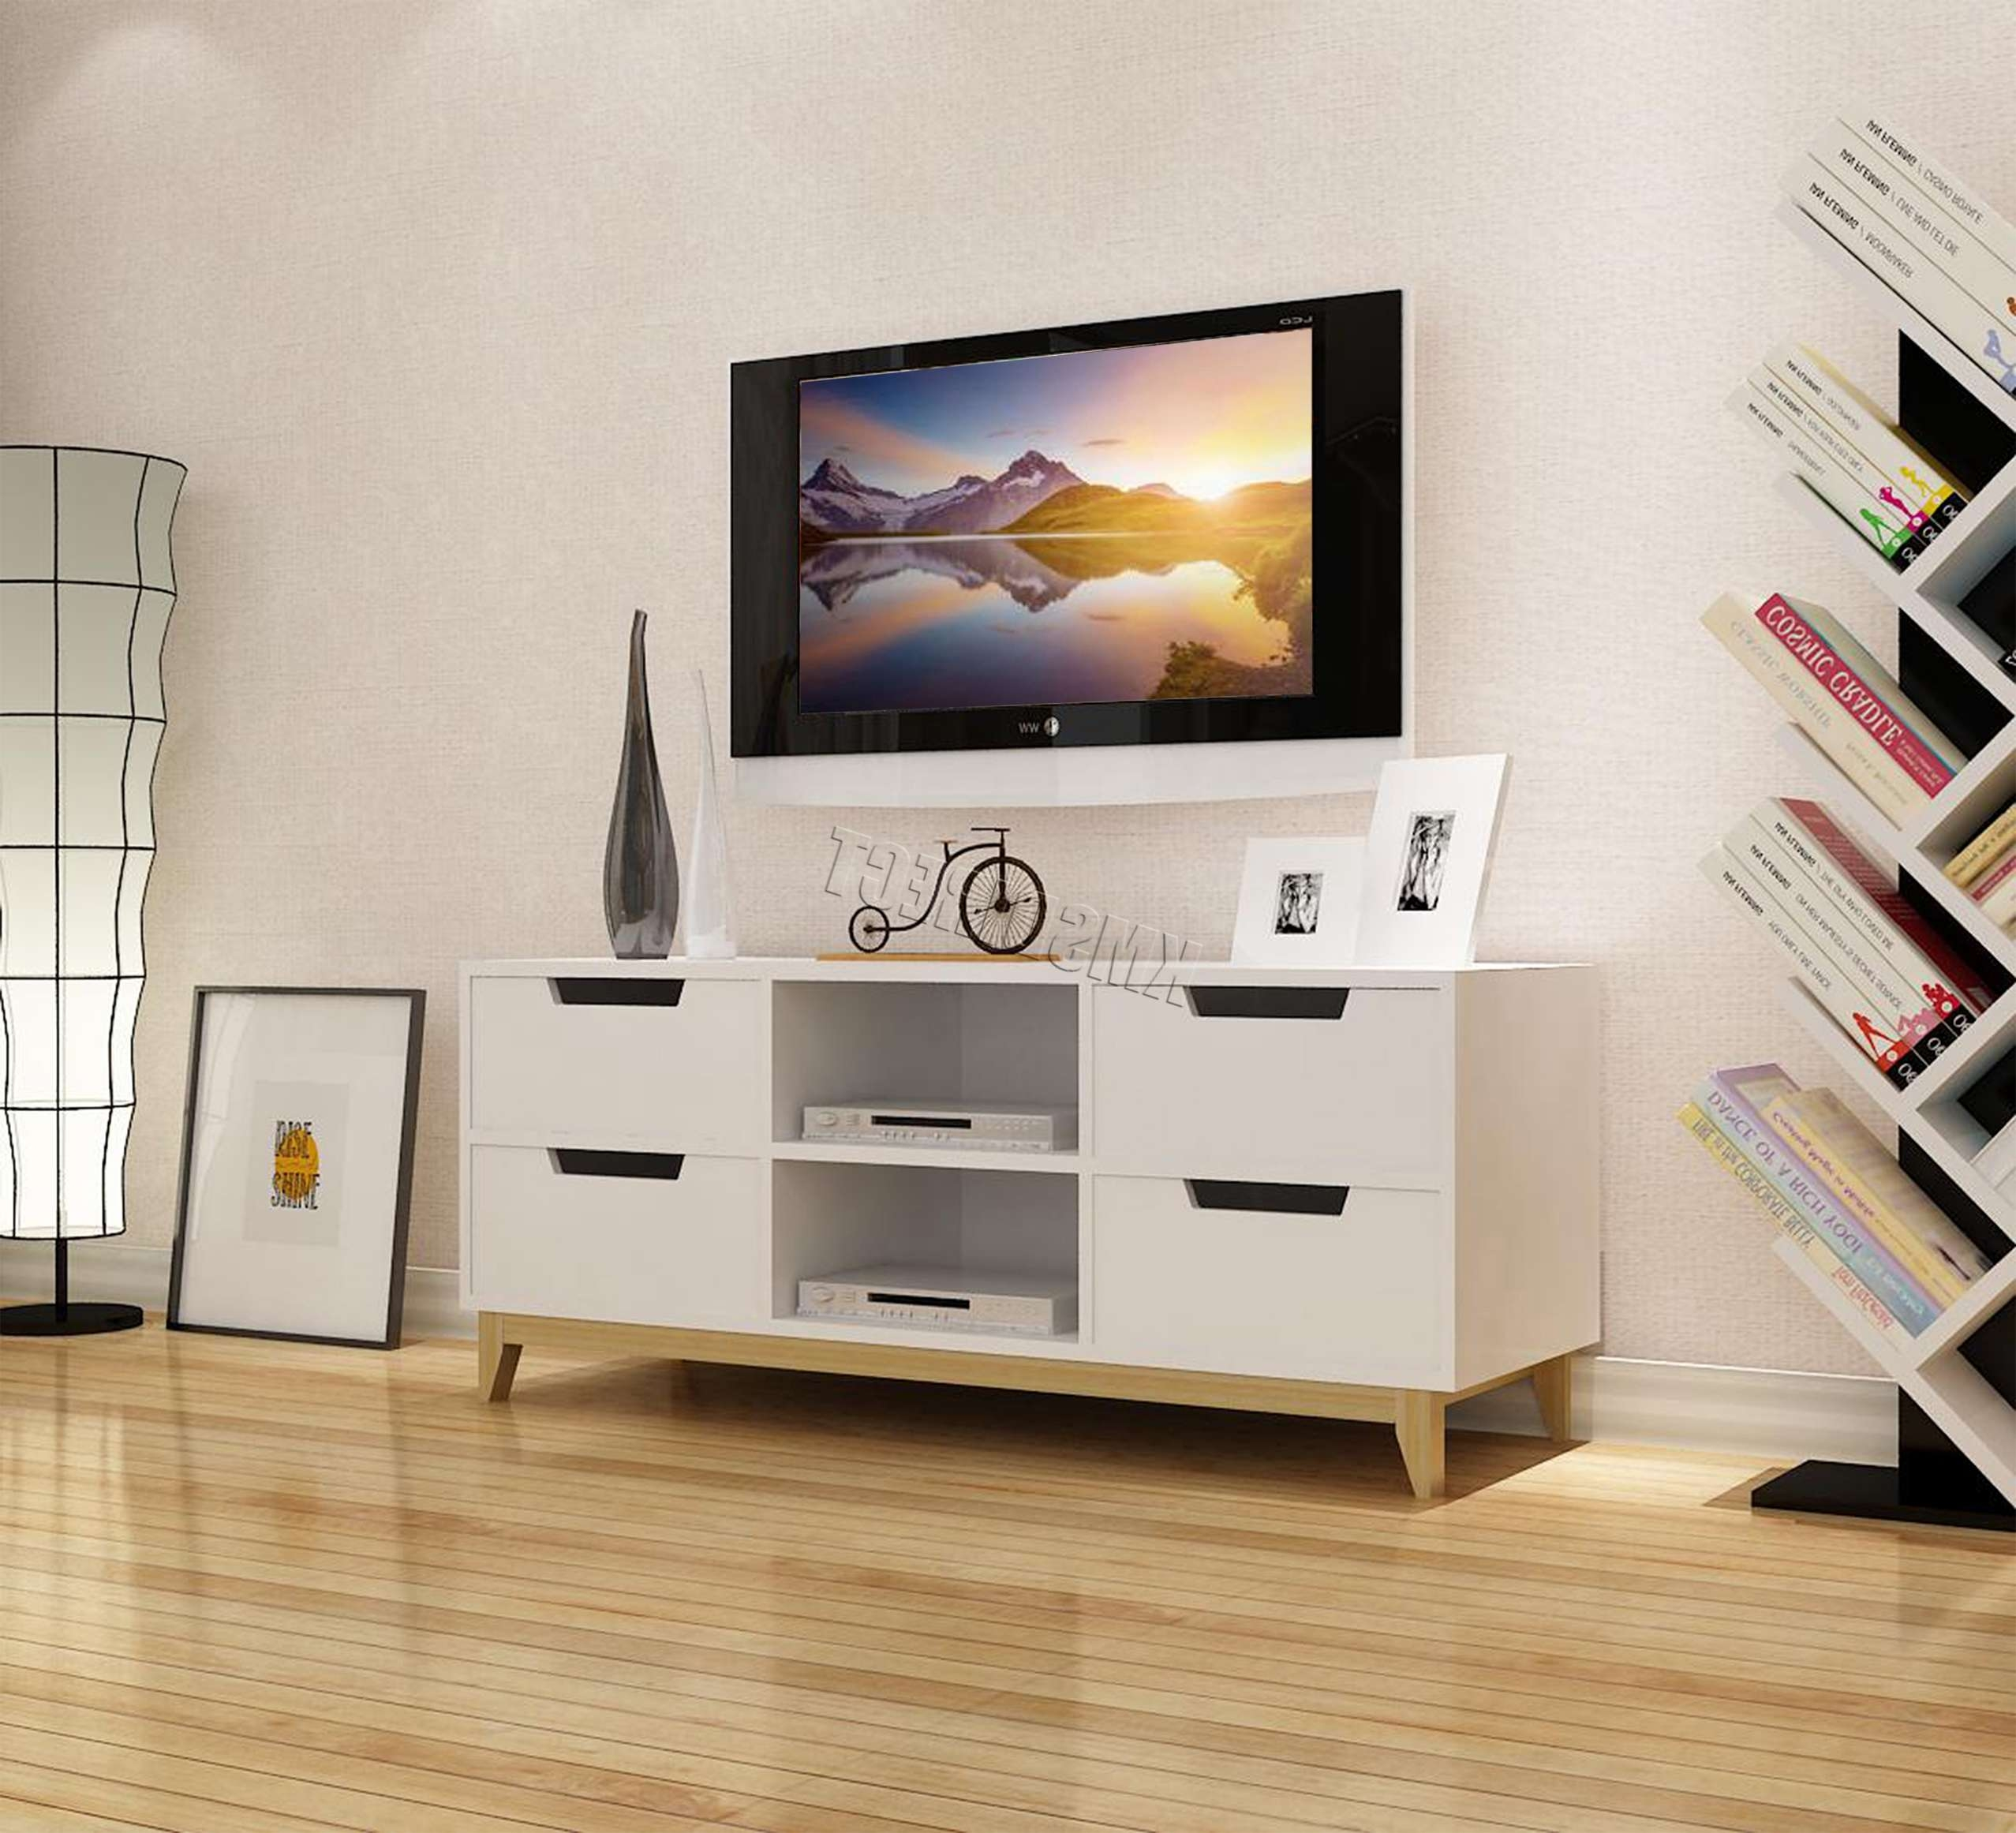 Foxhunter Mdf Tv Cabinet 4 Drawers 2 Layer Unit Stand Home 120Cm Throughout Tv Cabinets With Drawers (View 8 of 20)